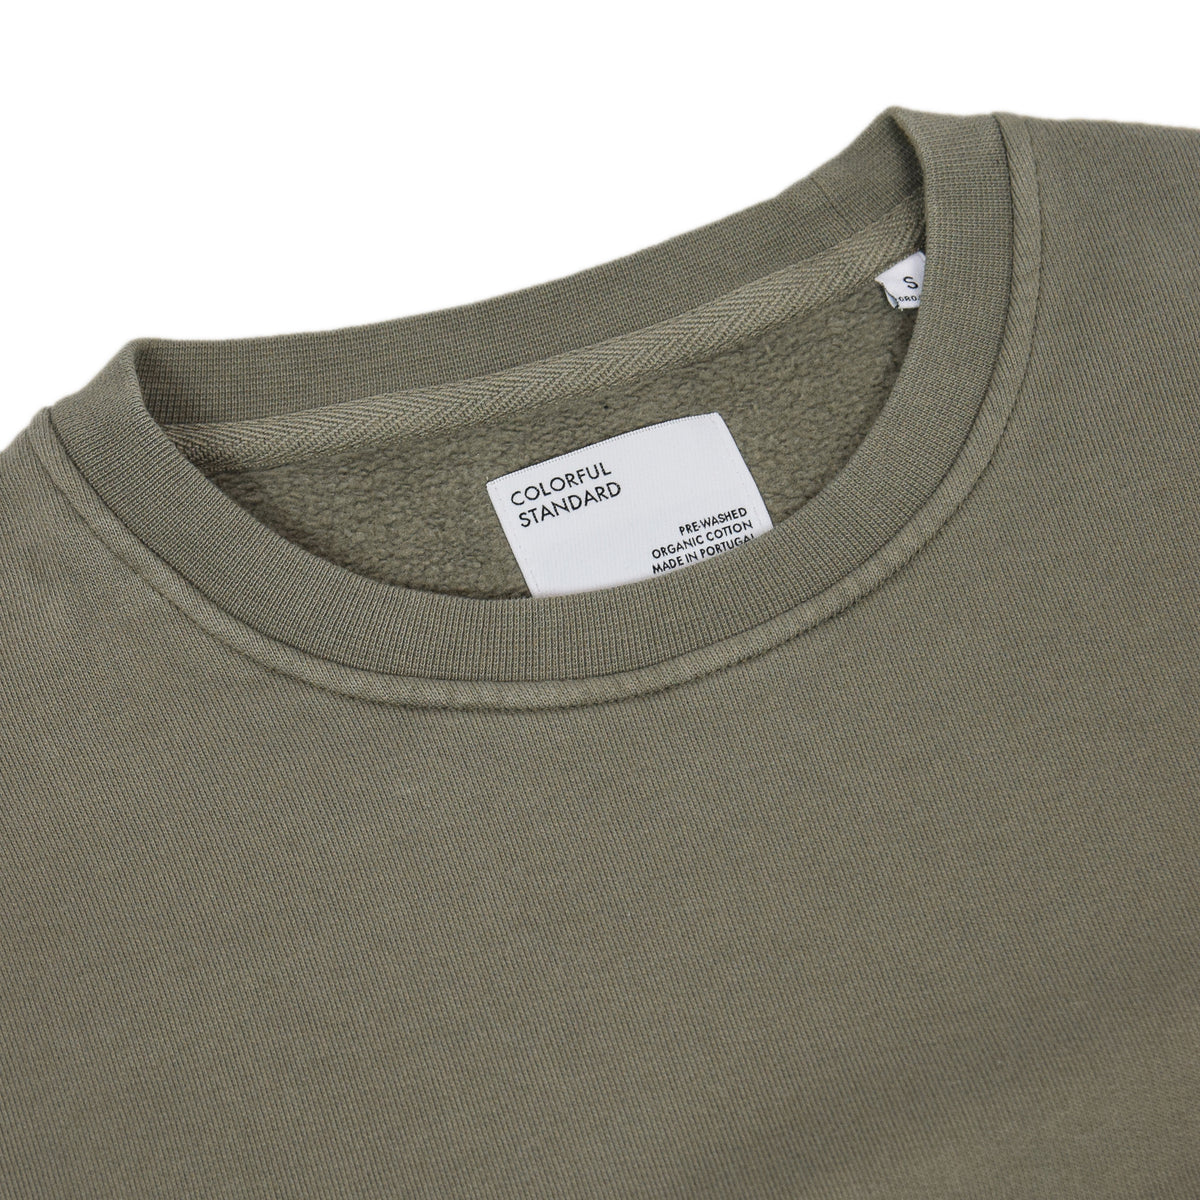 Colorful Standard Classic Organic Cotton Crew Sweat Dusty Olive collar